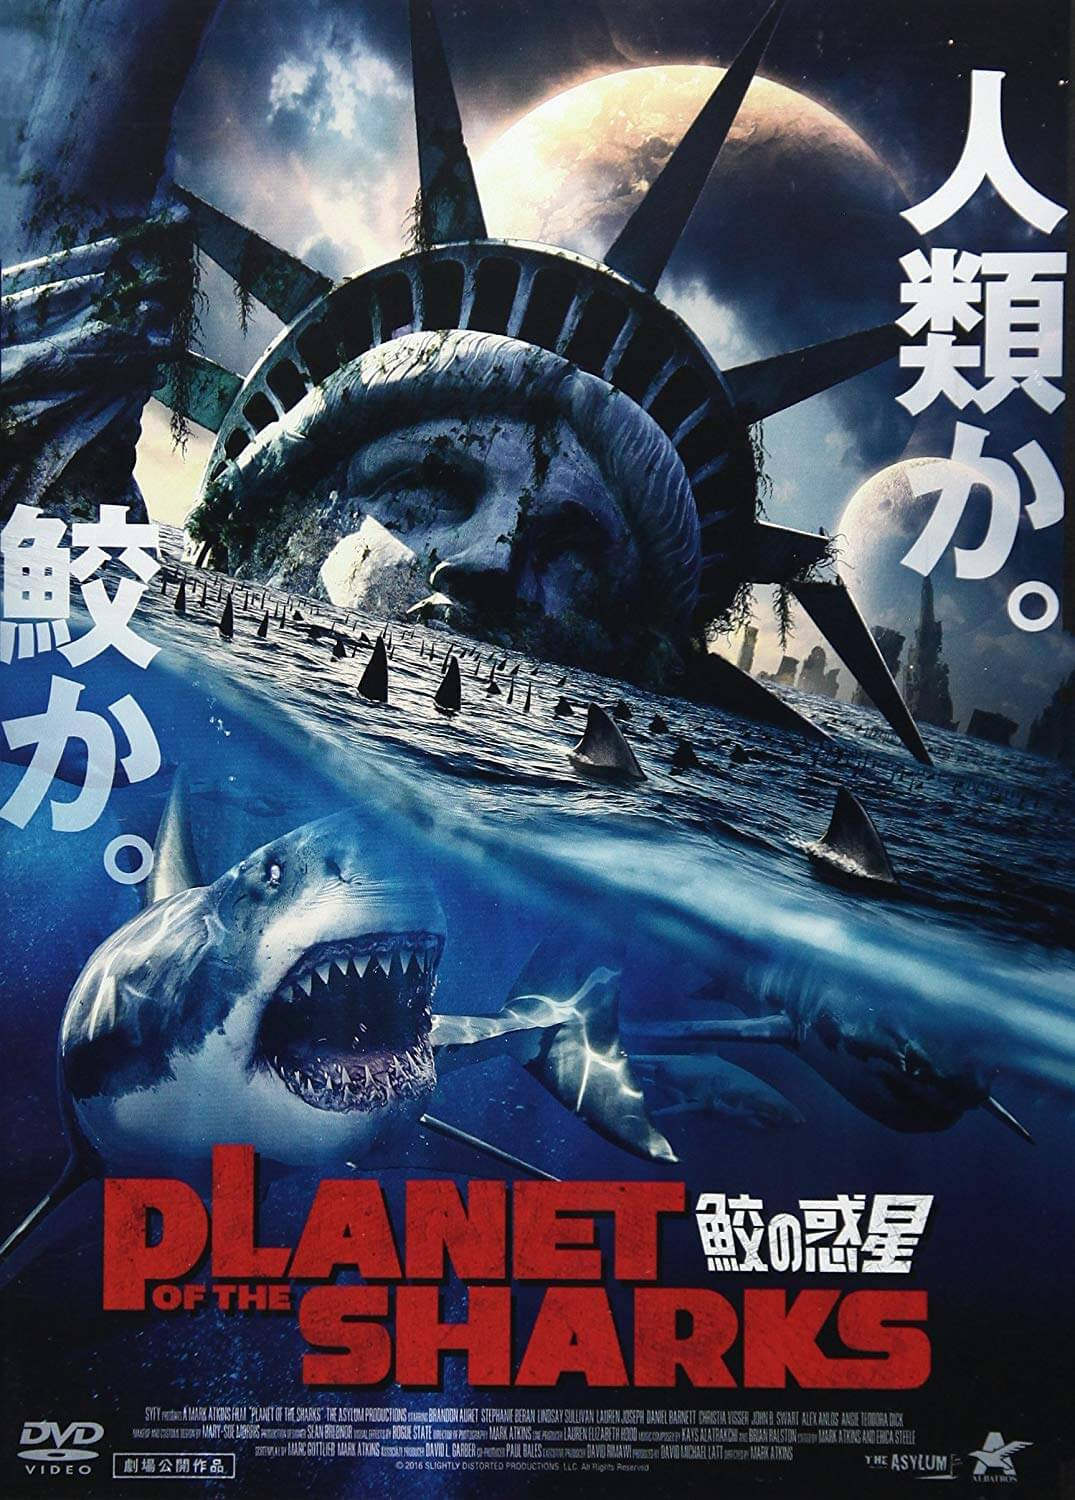 PLANET OF THE SHARKS 鮫の惑星サムネイル